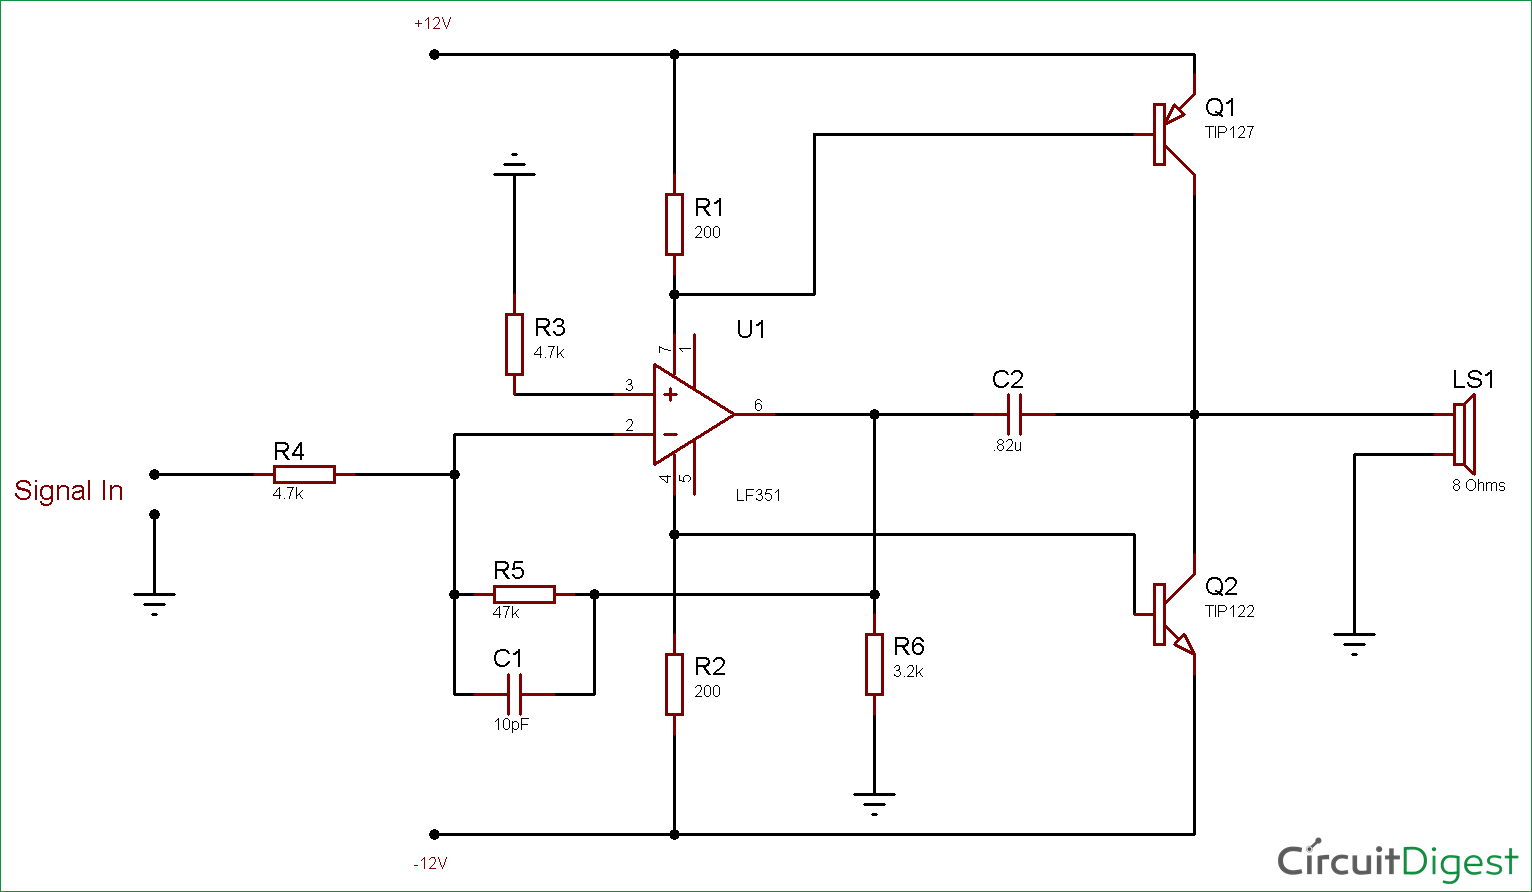 10 Watt Audio Amplifier Circuit Diagram using Op-Amp and